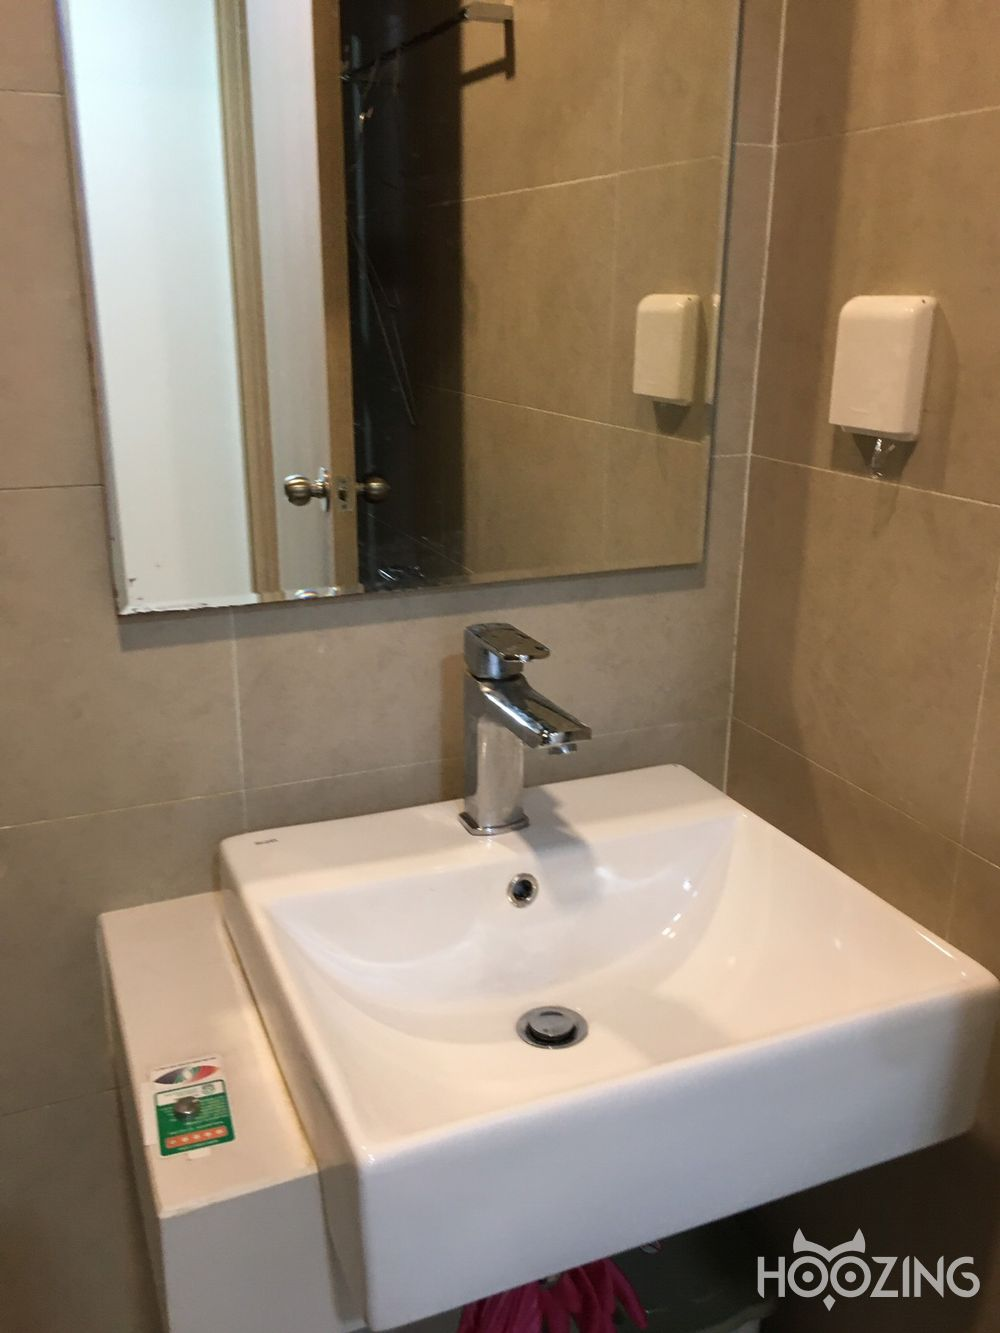 Sun Avenue Office-tel Apartment 1 Bedroom - Basic Furnished & Sun-Filled